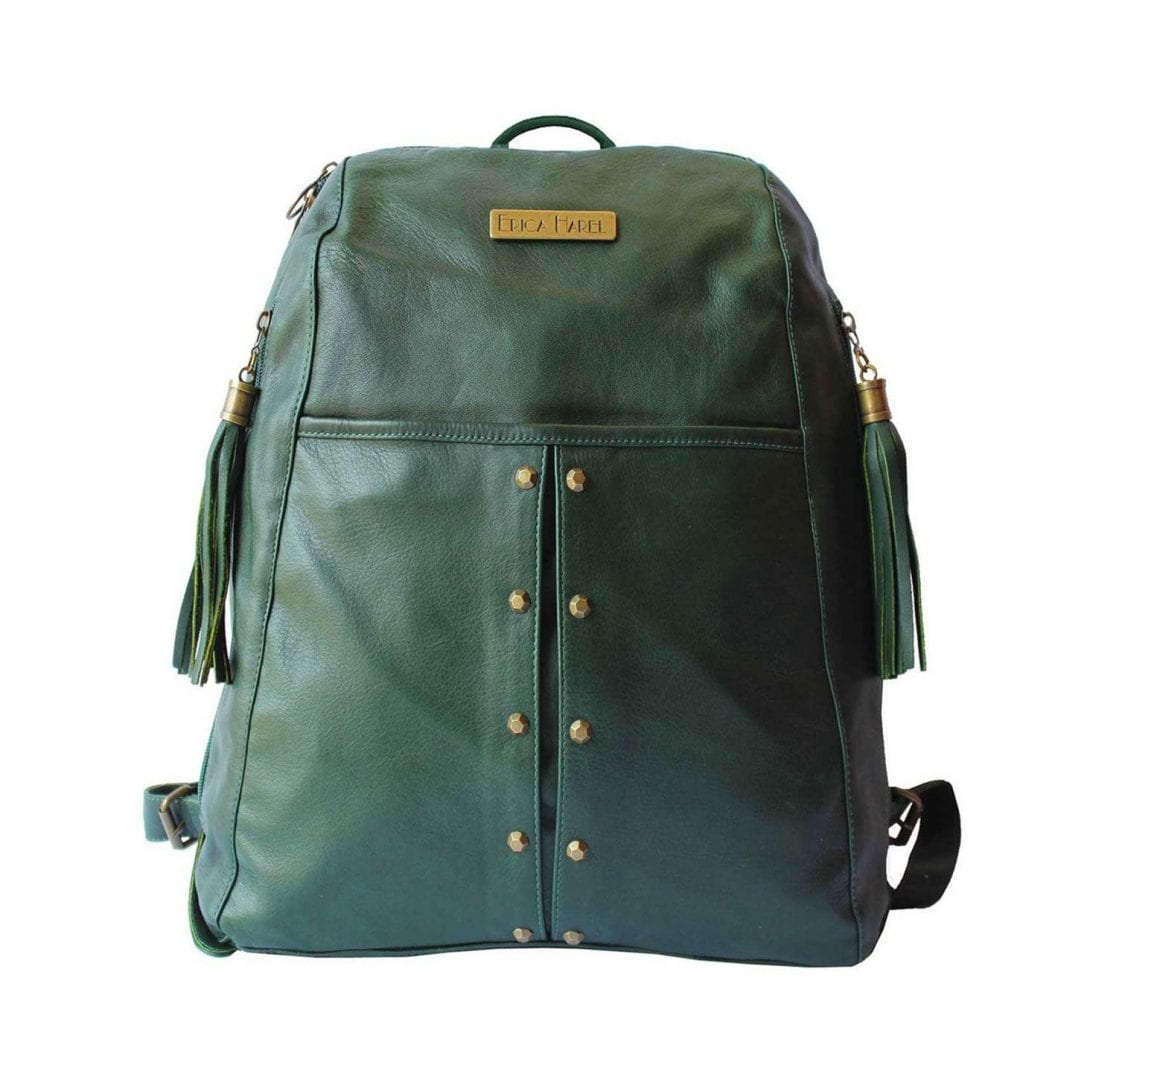 Green Leather Backpack | Soft Leather Backpack